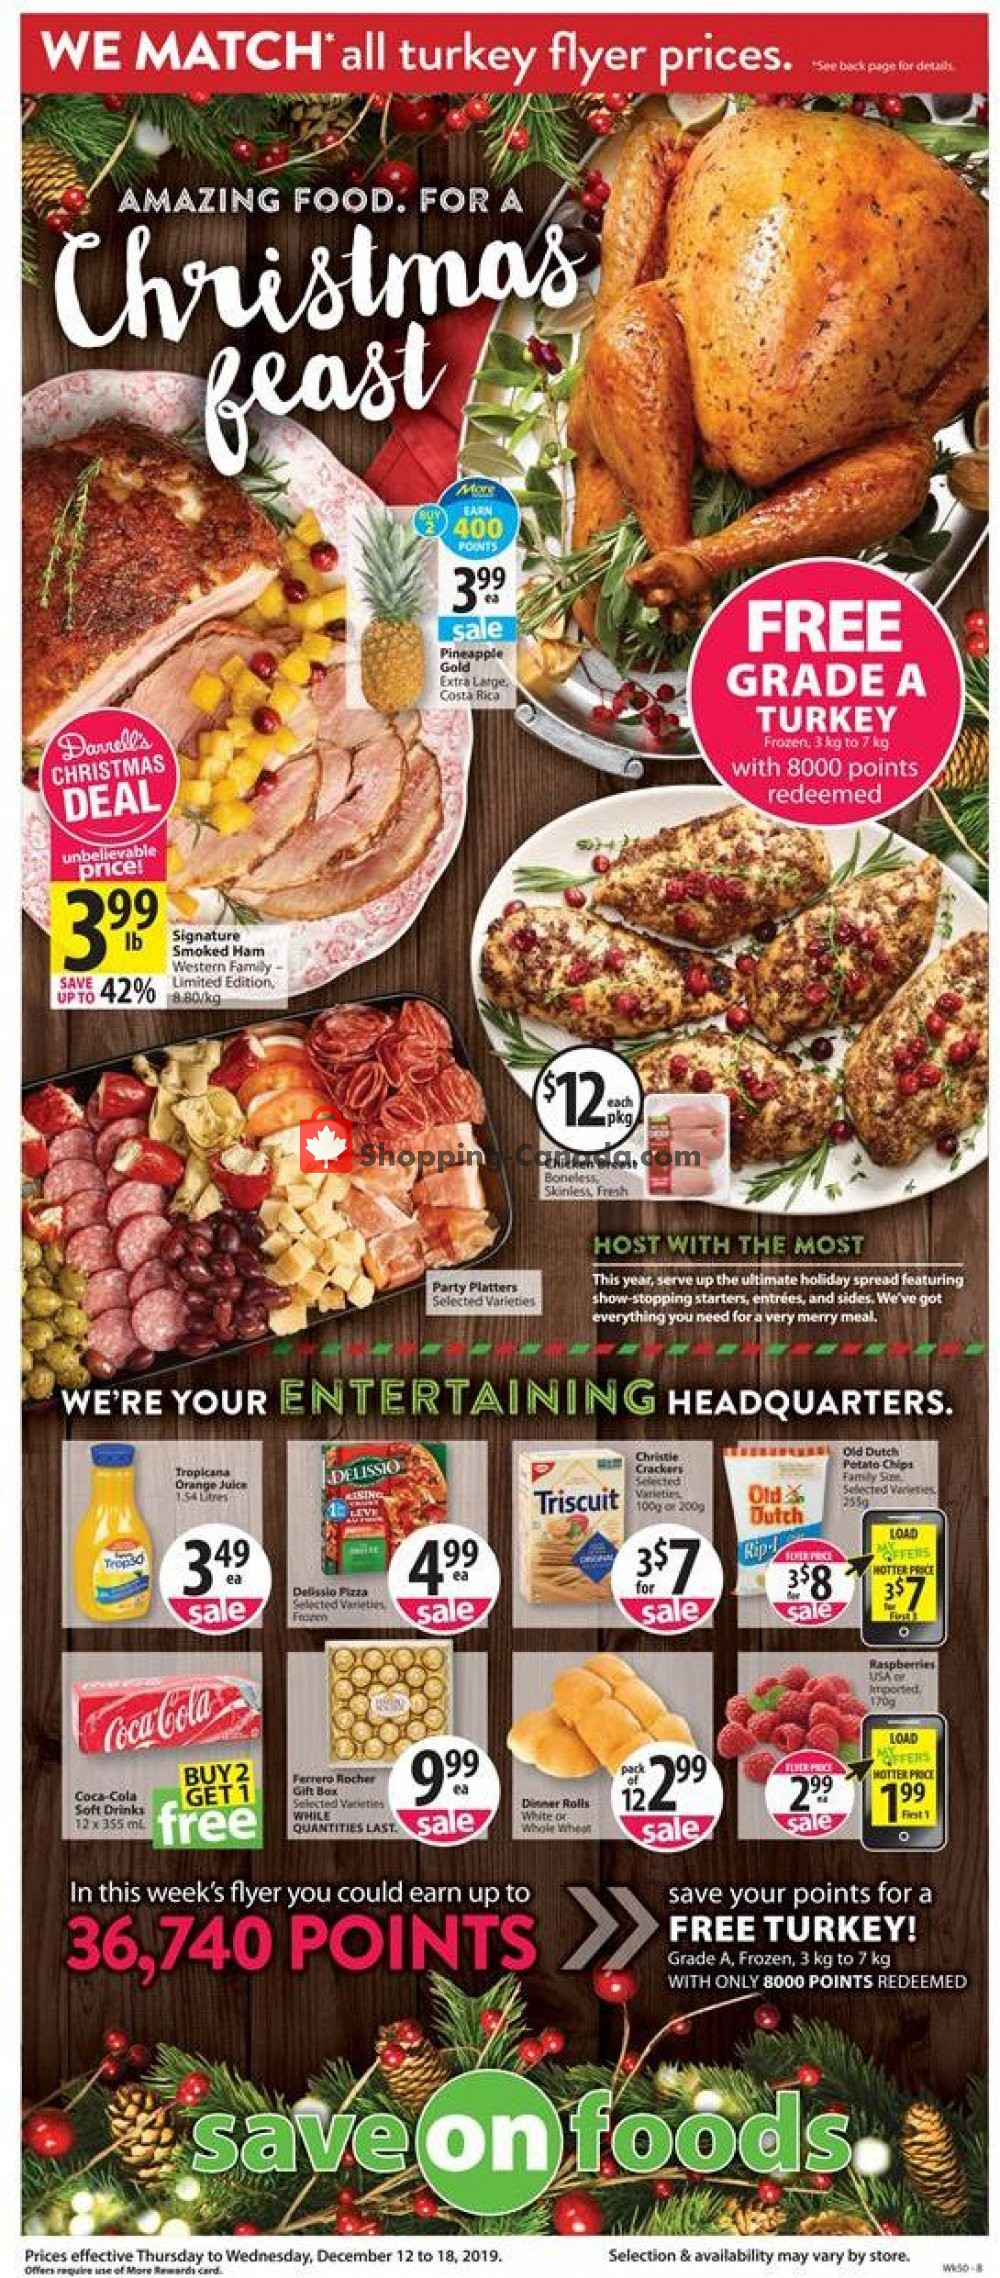 Flyer Save-On-Foods Canada - from Thursday December 12, 2019 to Wednesday December 18, 2019